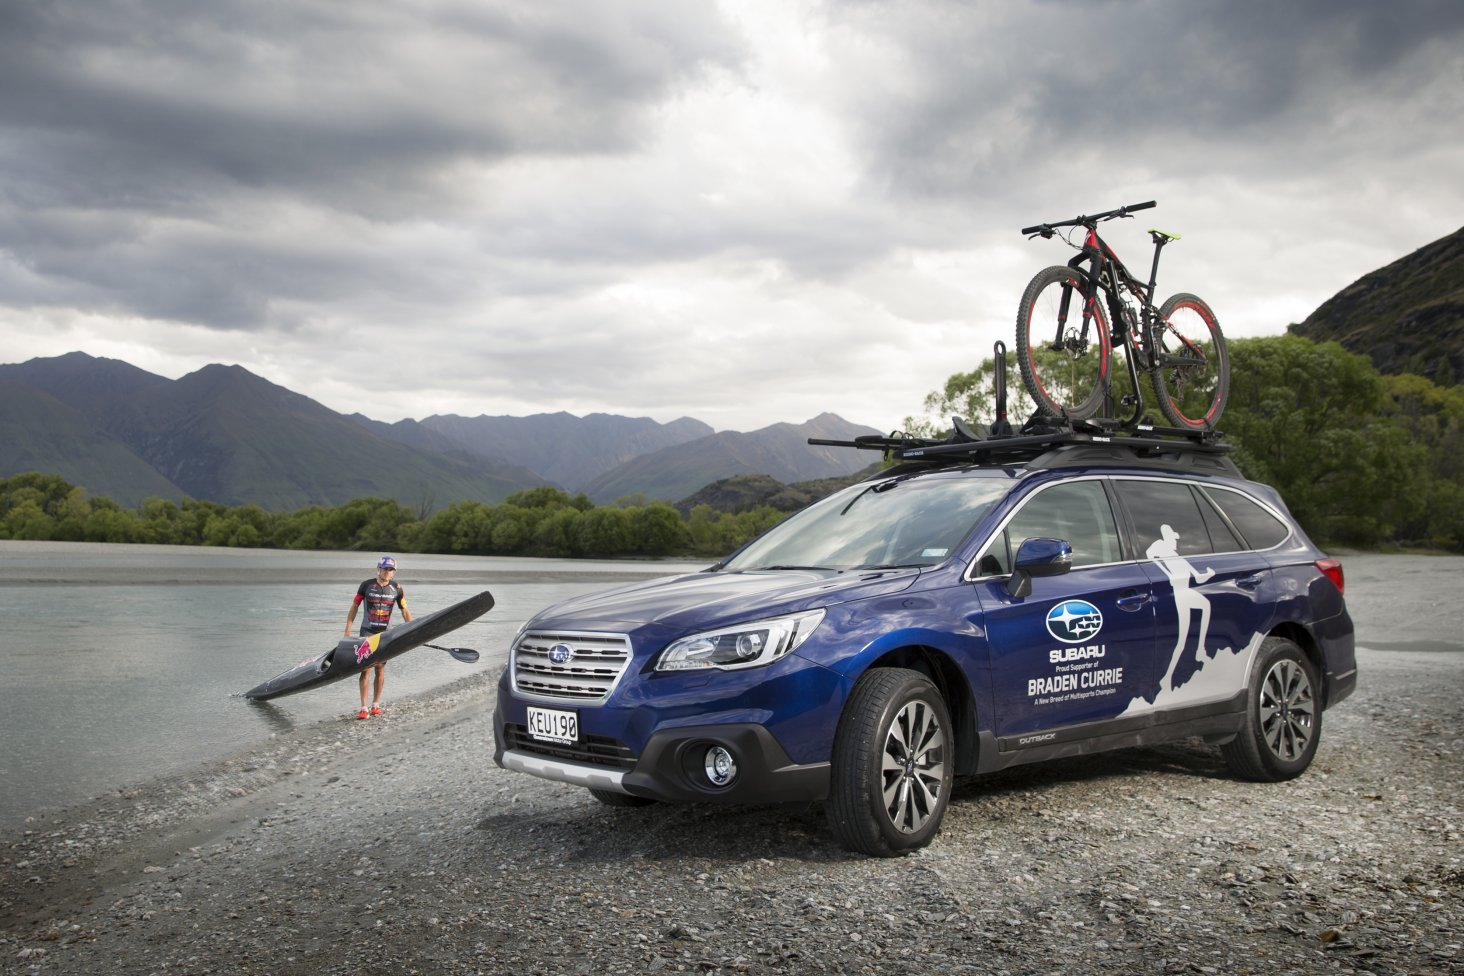 Subaru Brand Ambassador Braden Currie with his Subaru Outback, which has enabled him to 'do' his very best to prepare for a fourth Kathmandu Coast to Coast victory in February. PHOTO FREE FOR EDITORIAL USE.